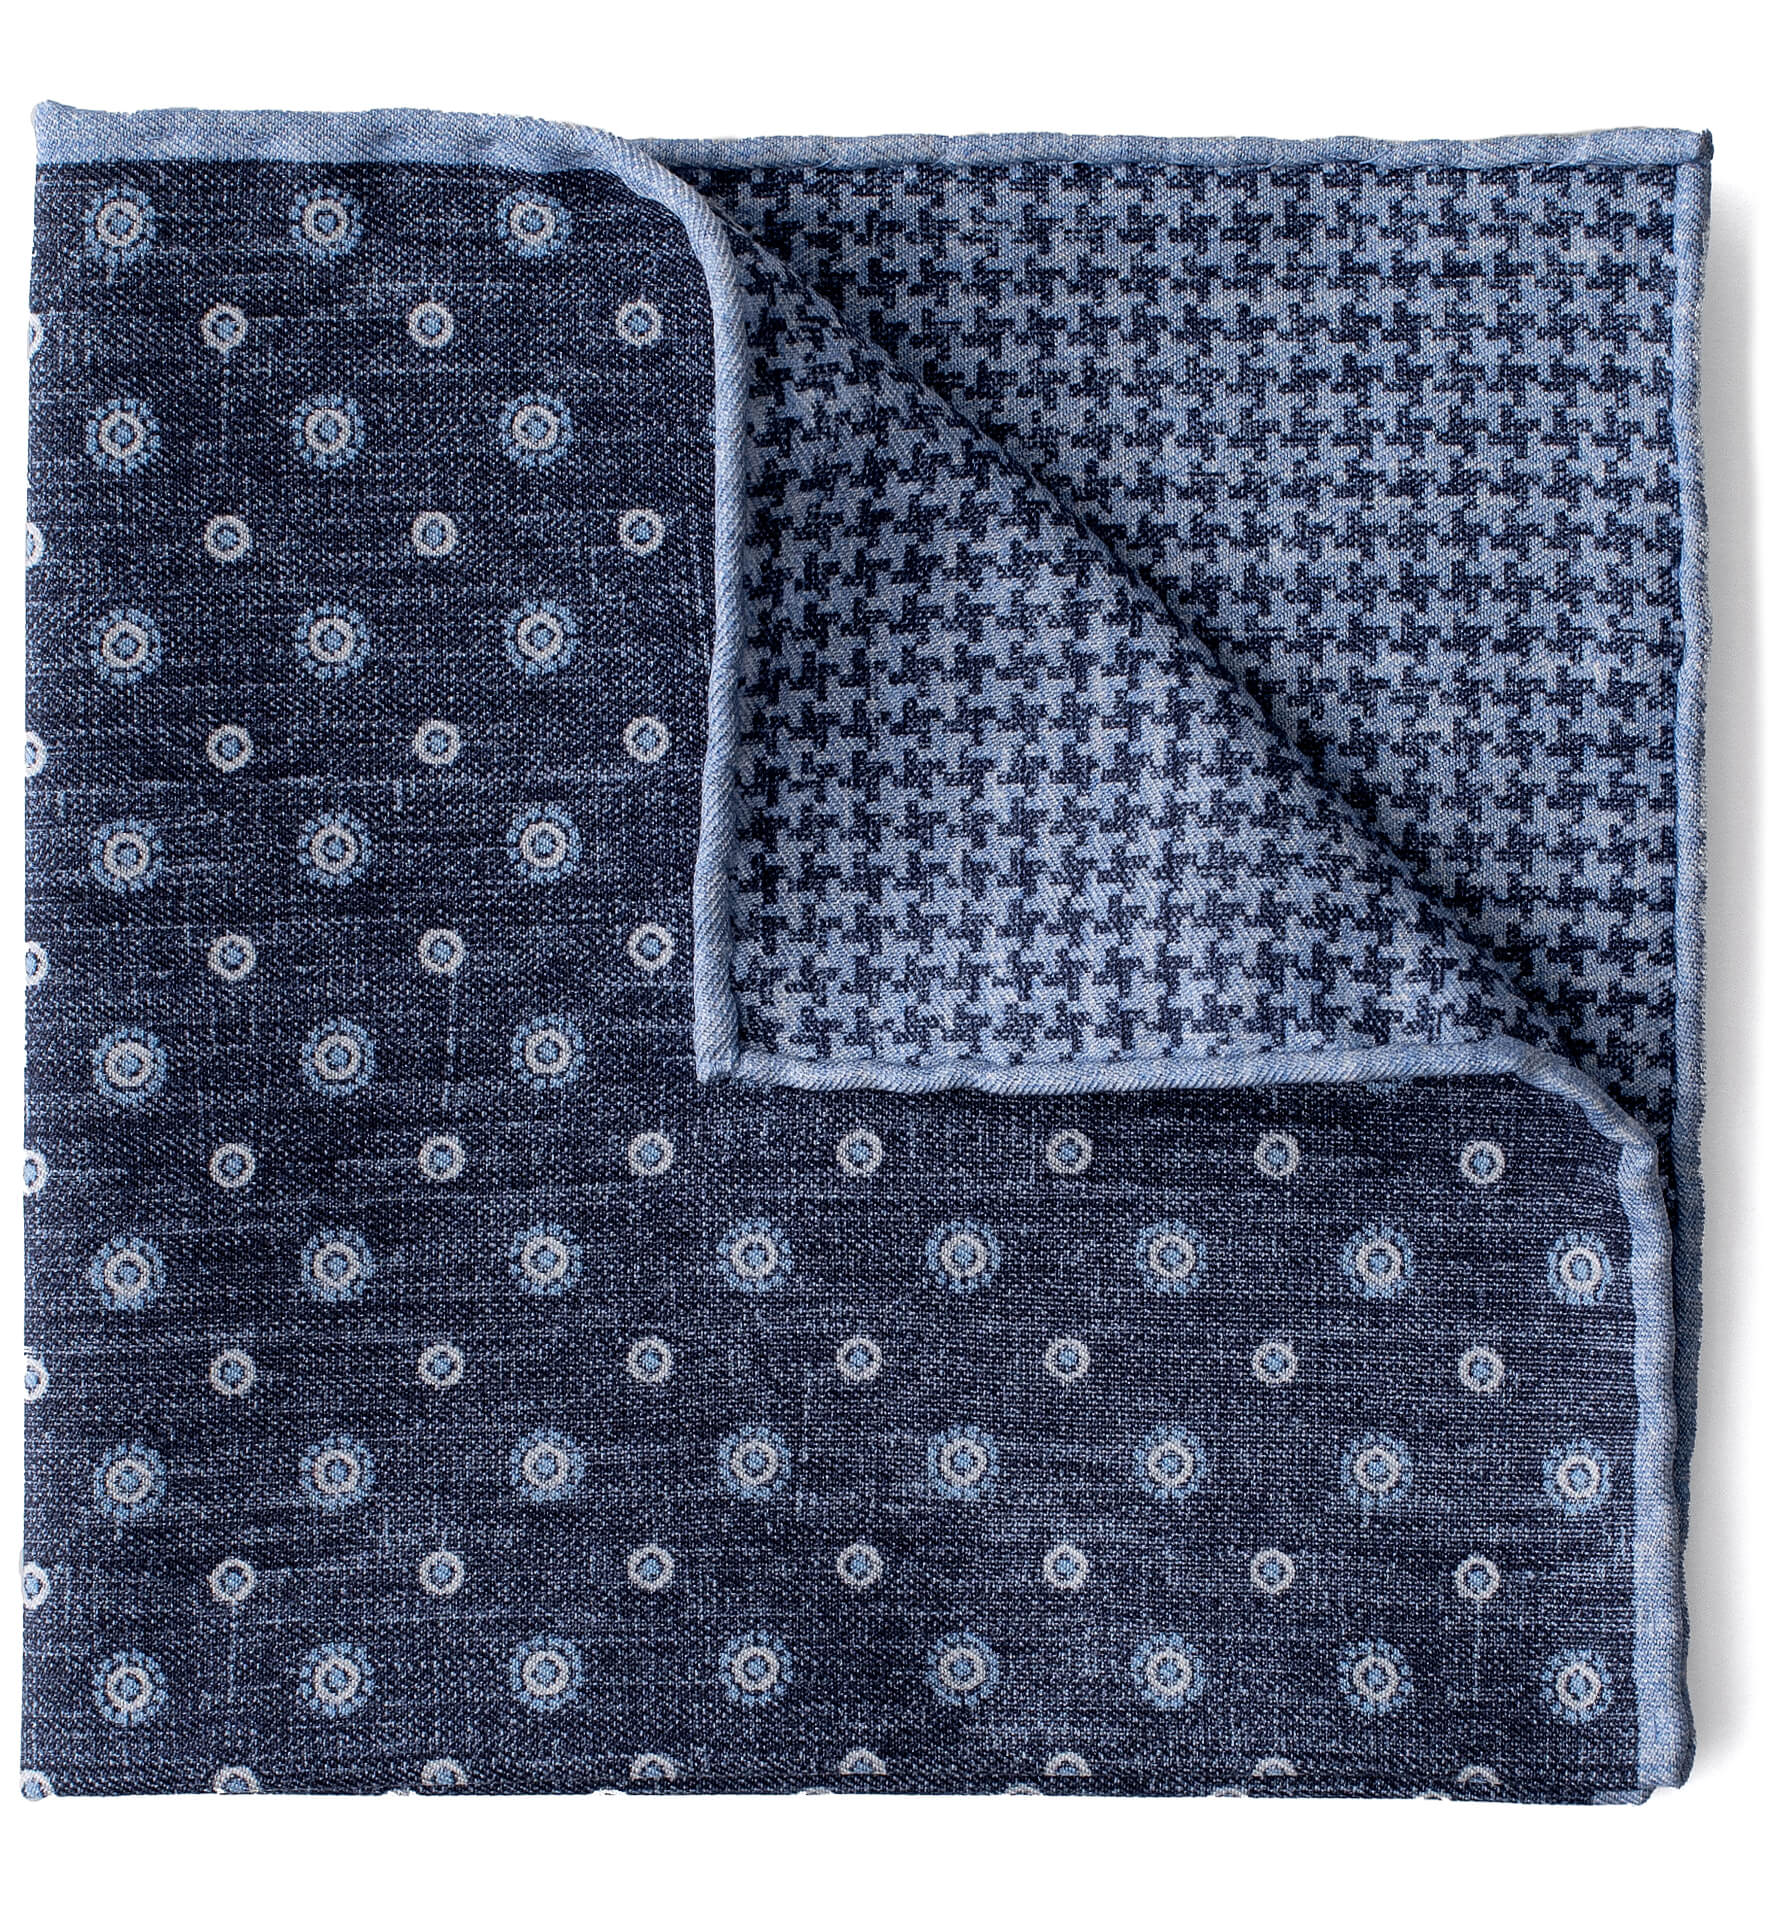 Zoom Image of Navy and Light Blue Dot Print Pocket Square